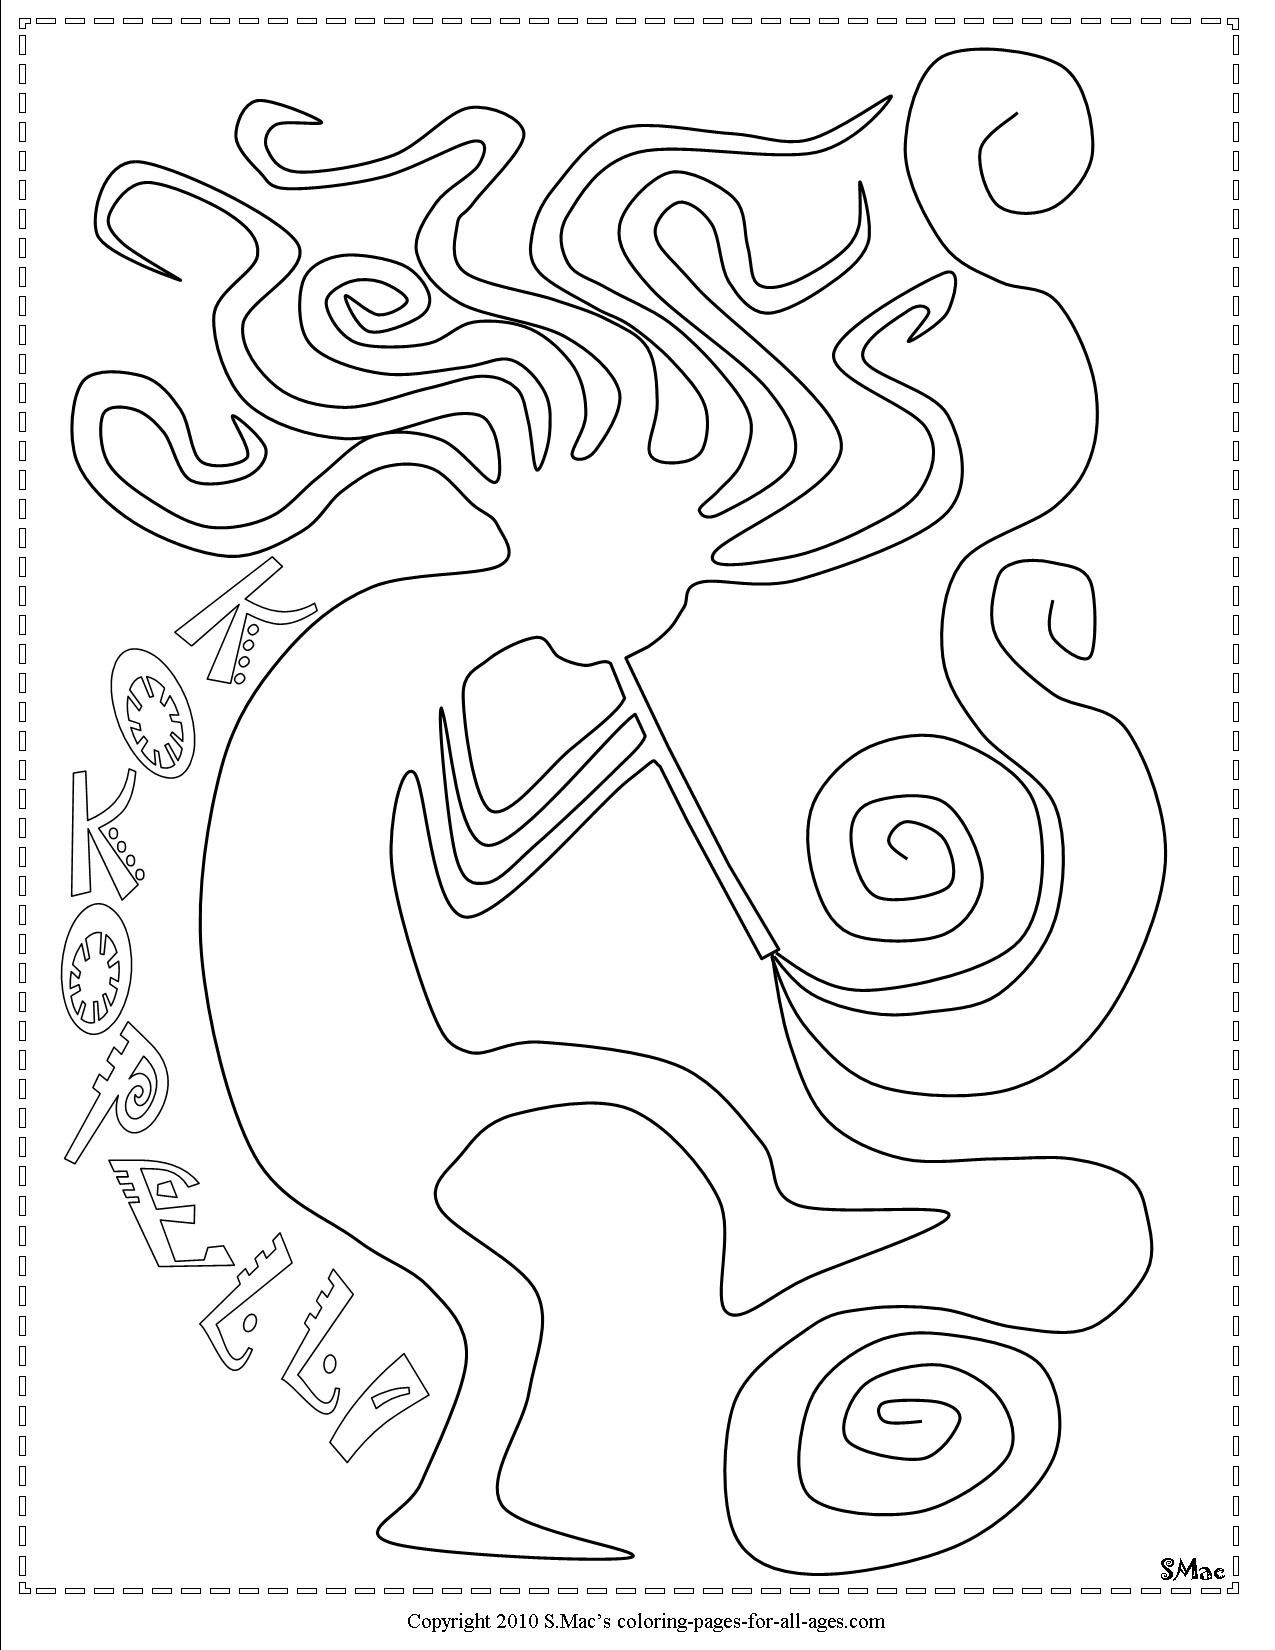 Sc S Kokopelli Coloring Page